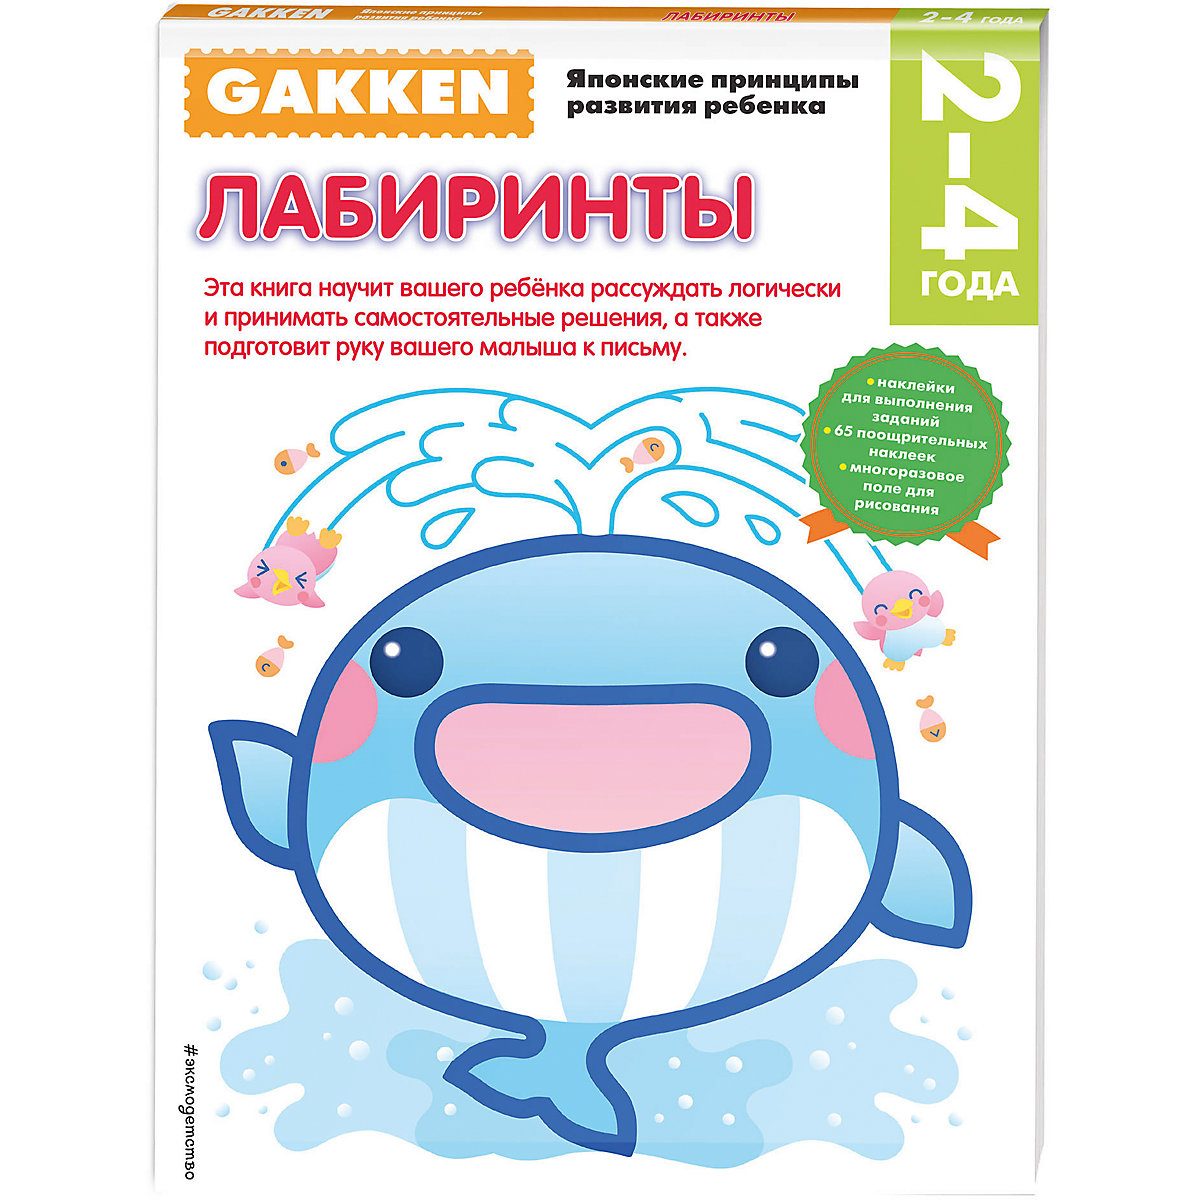 Books EKSMO 4400542 Children Education Encyclopedia Alphabet Dictionary Book For Baby MTpromo